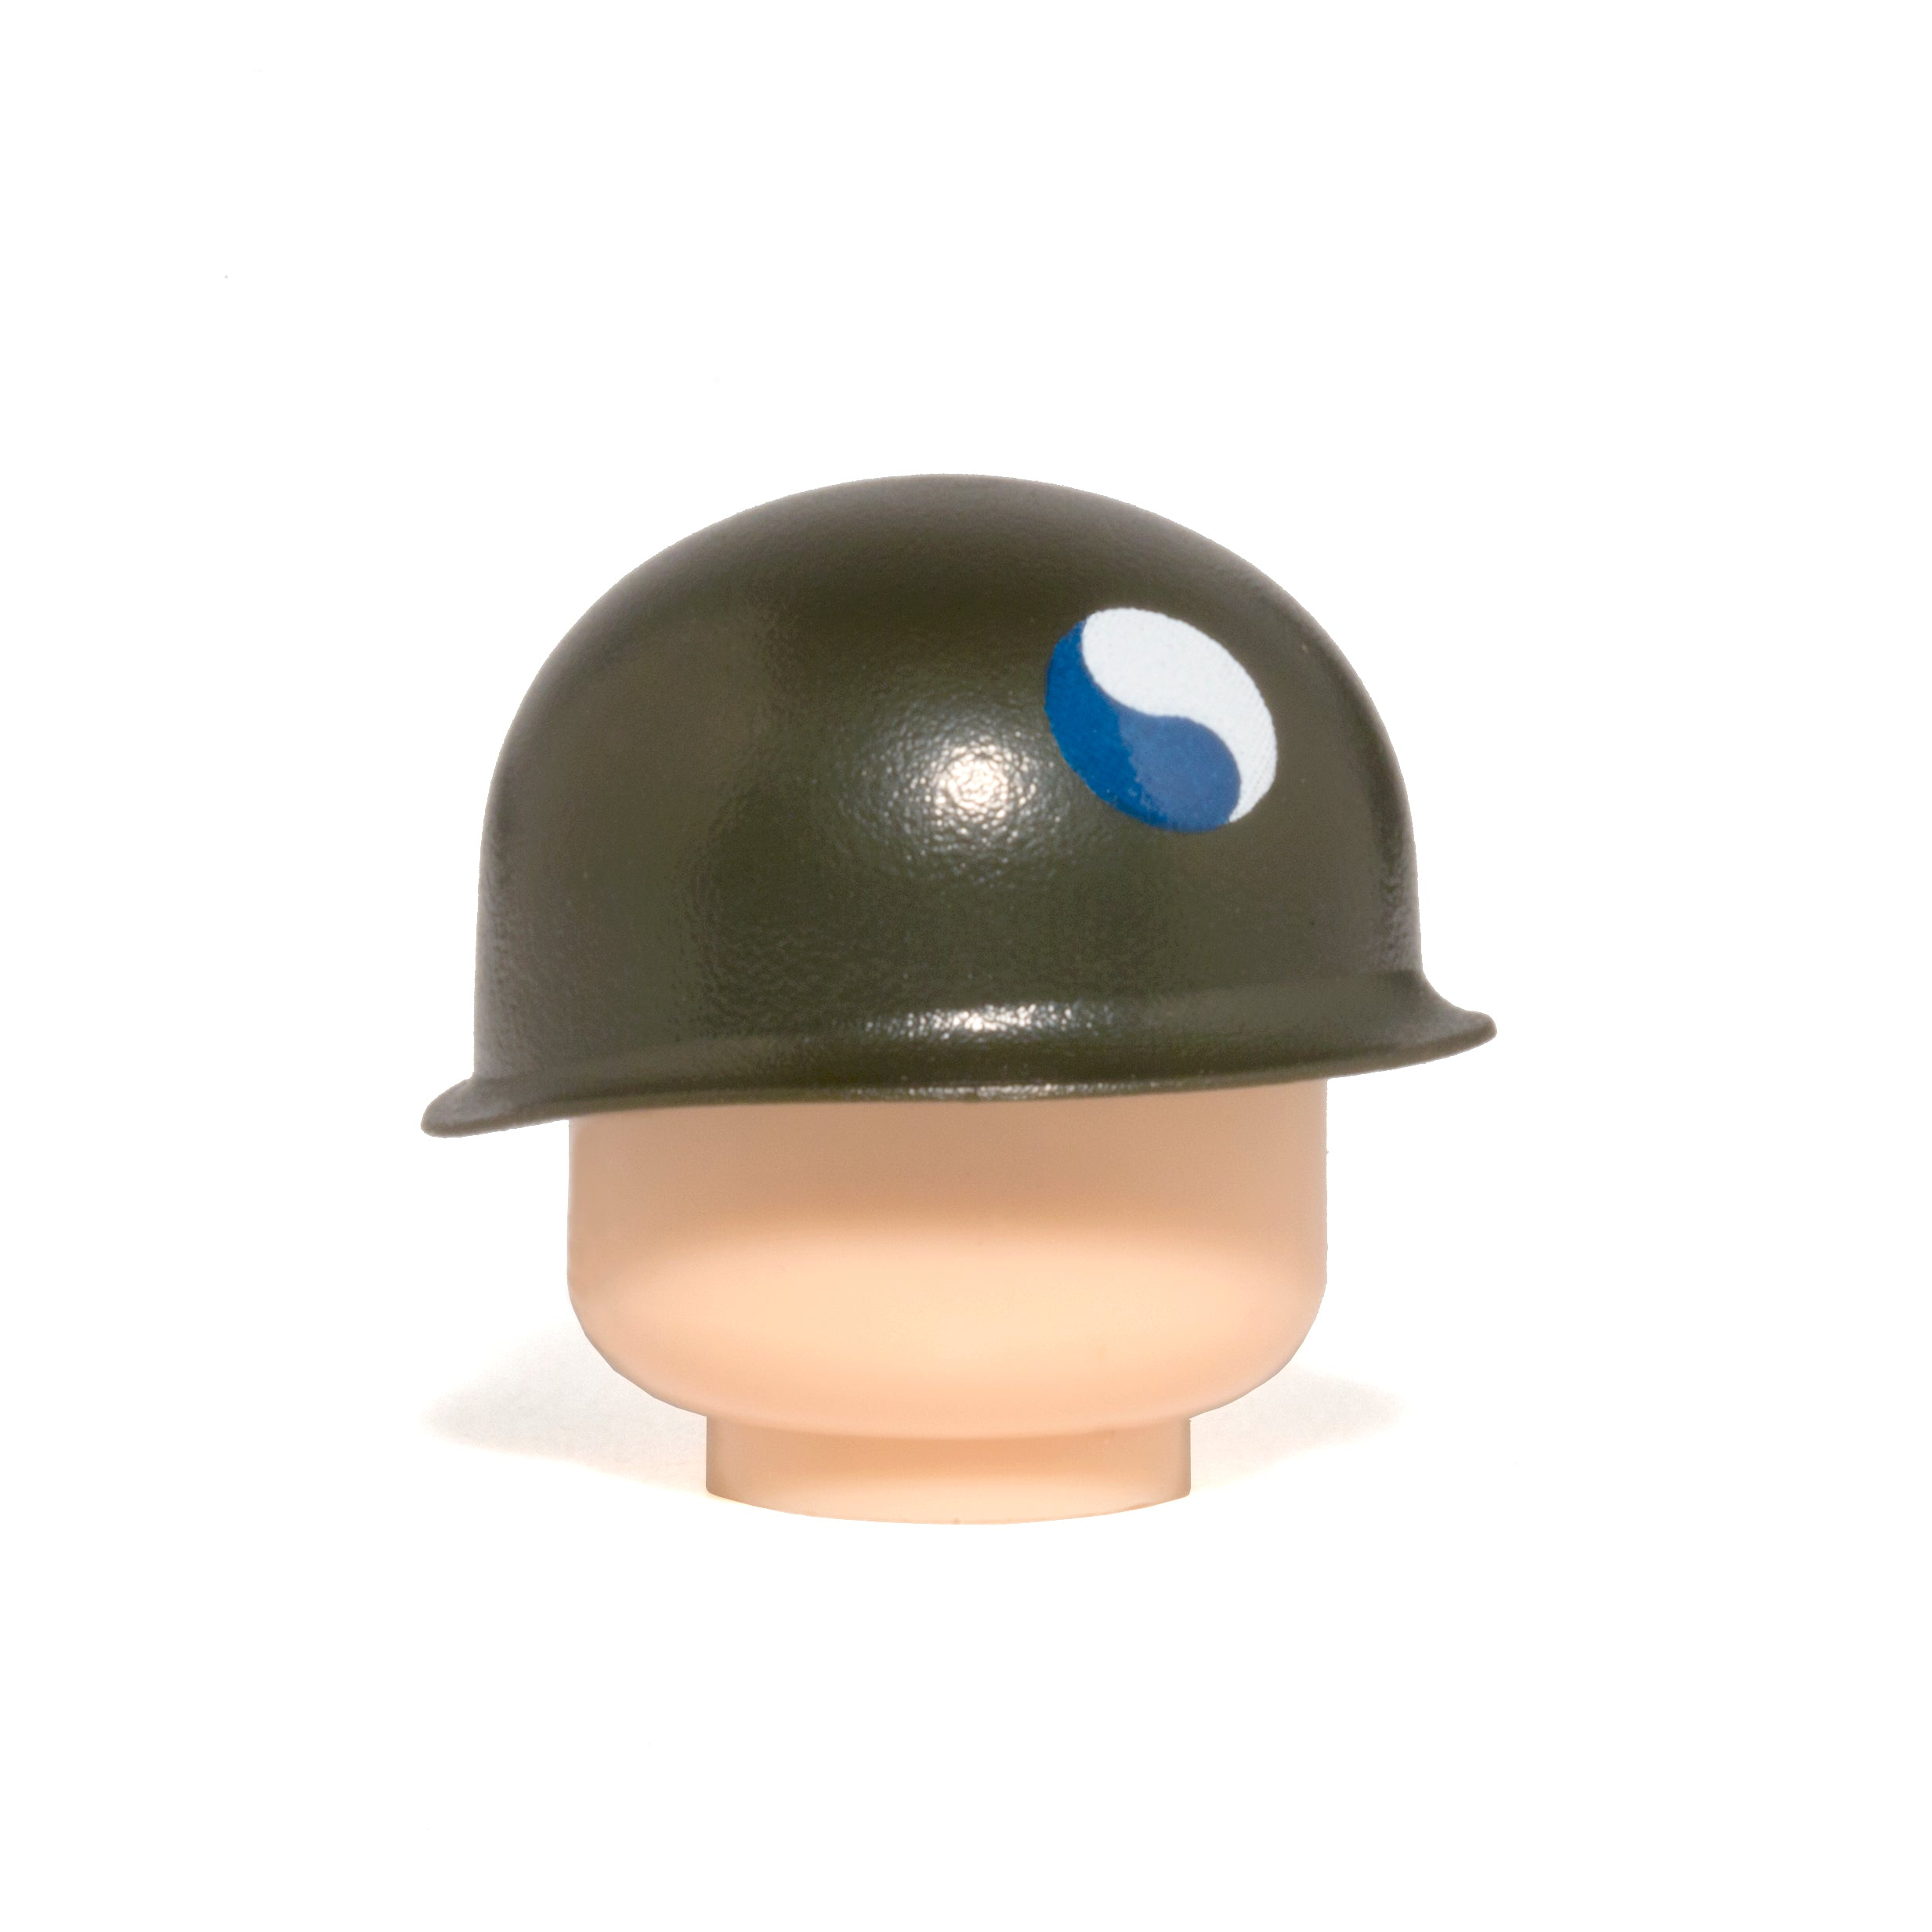 29th Infantry Division M1 Helmet